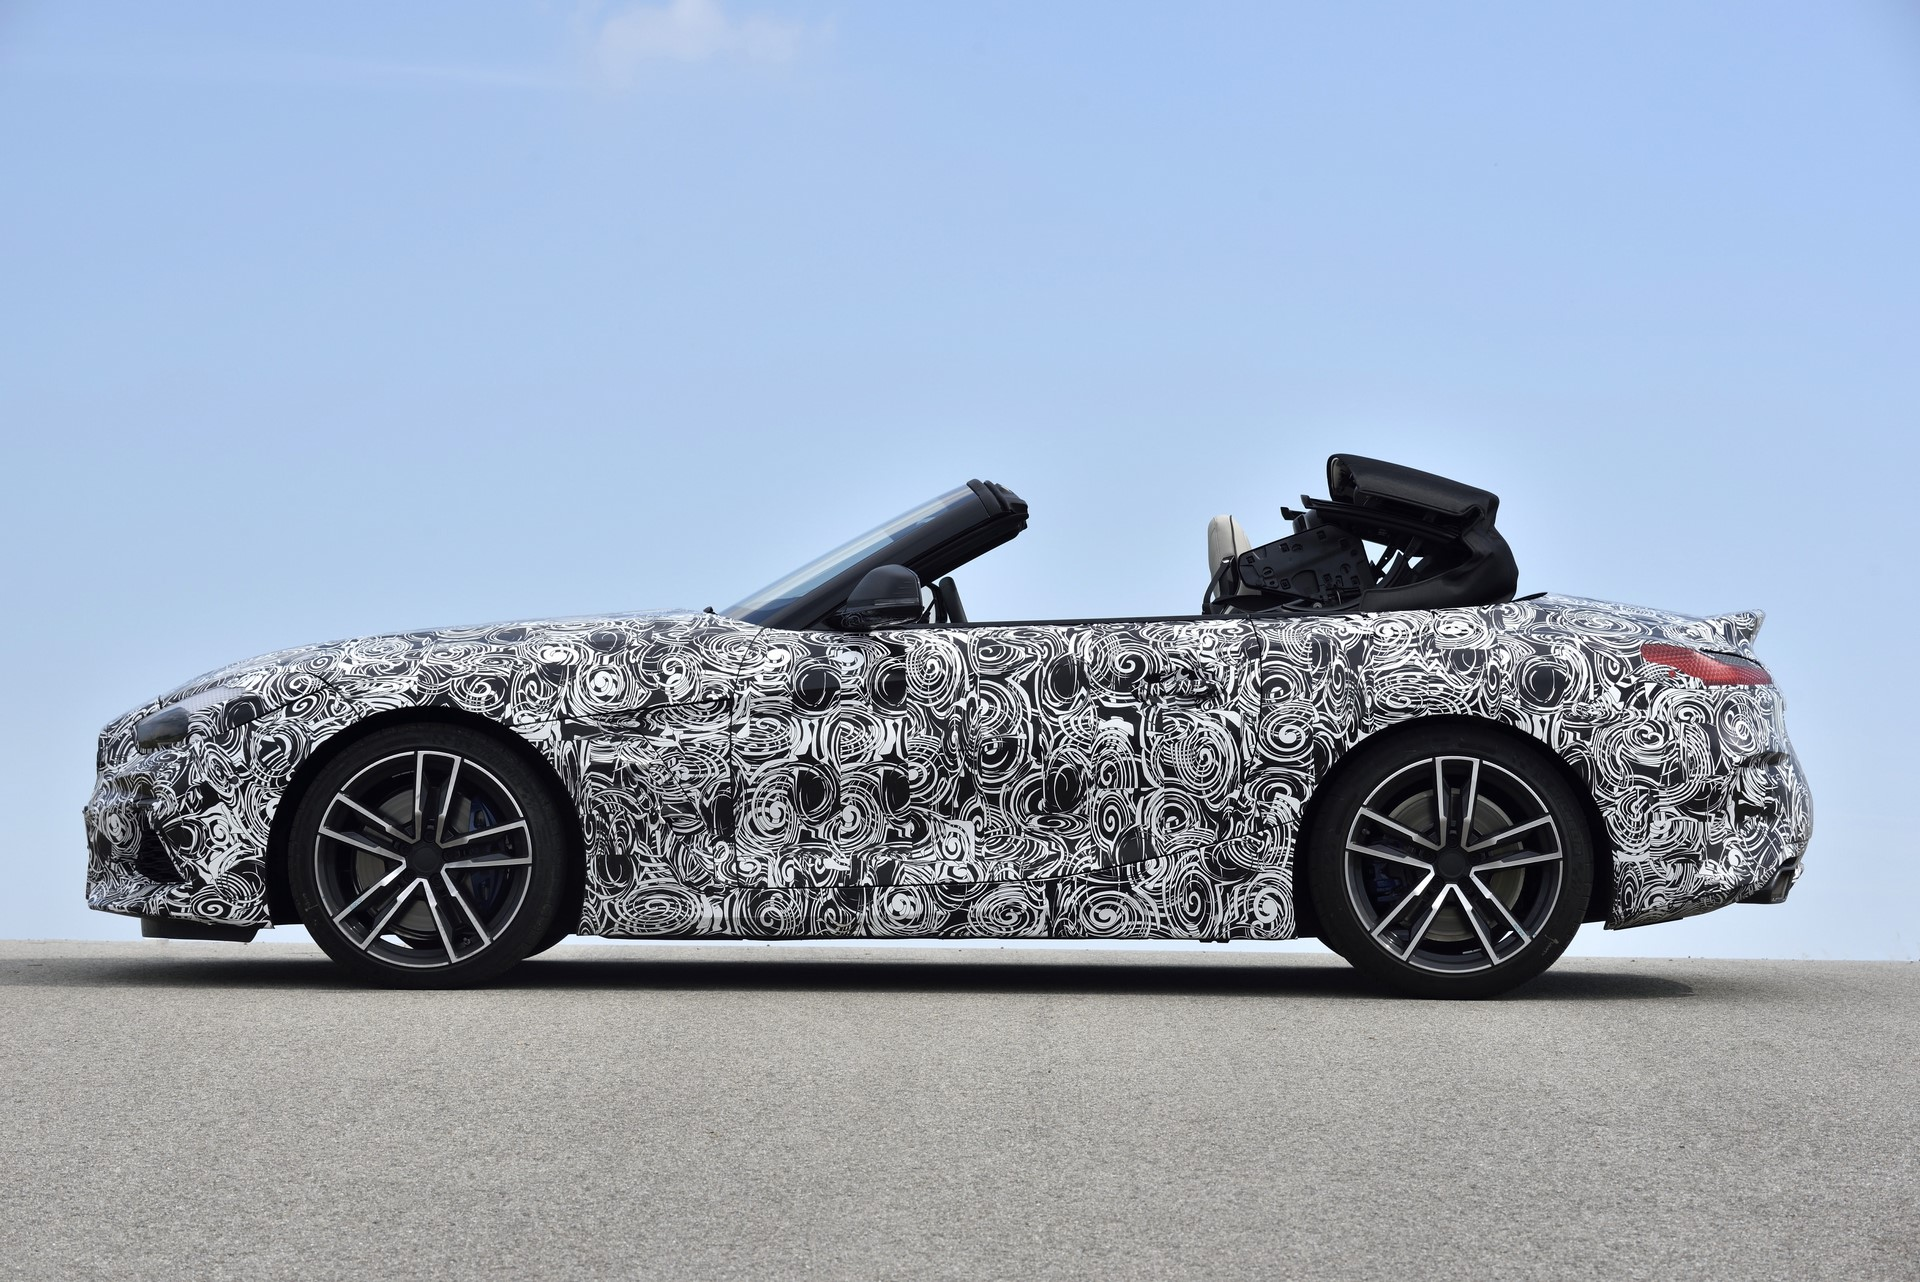 BMW Z4 M40i 2019 official spy photos (36)